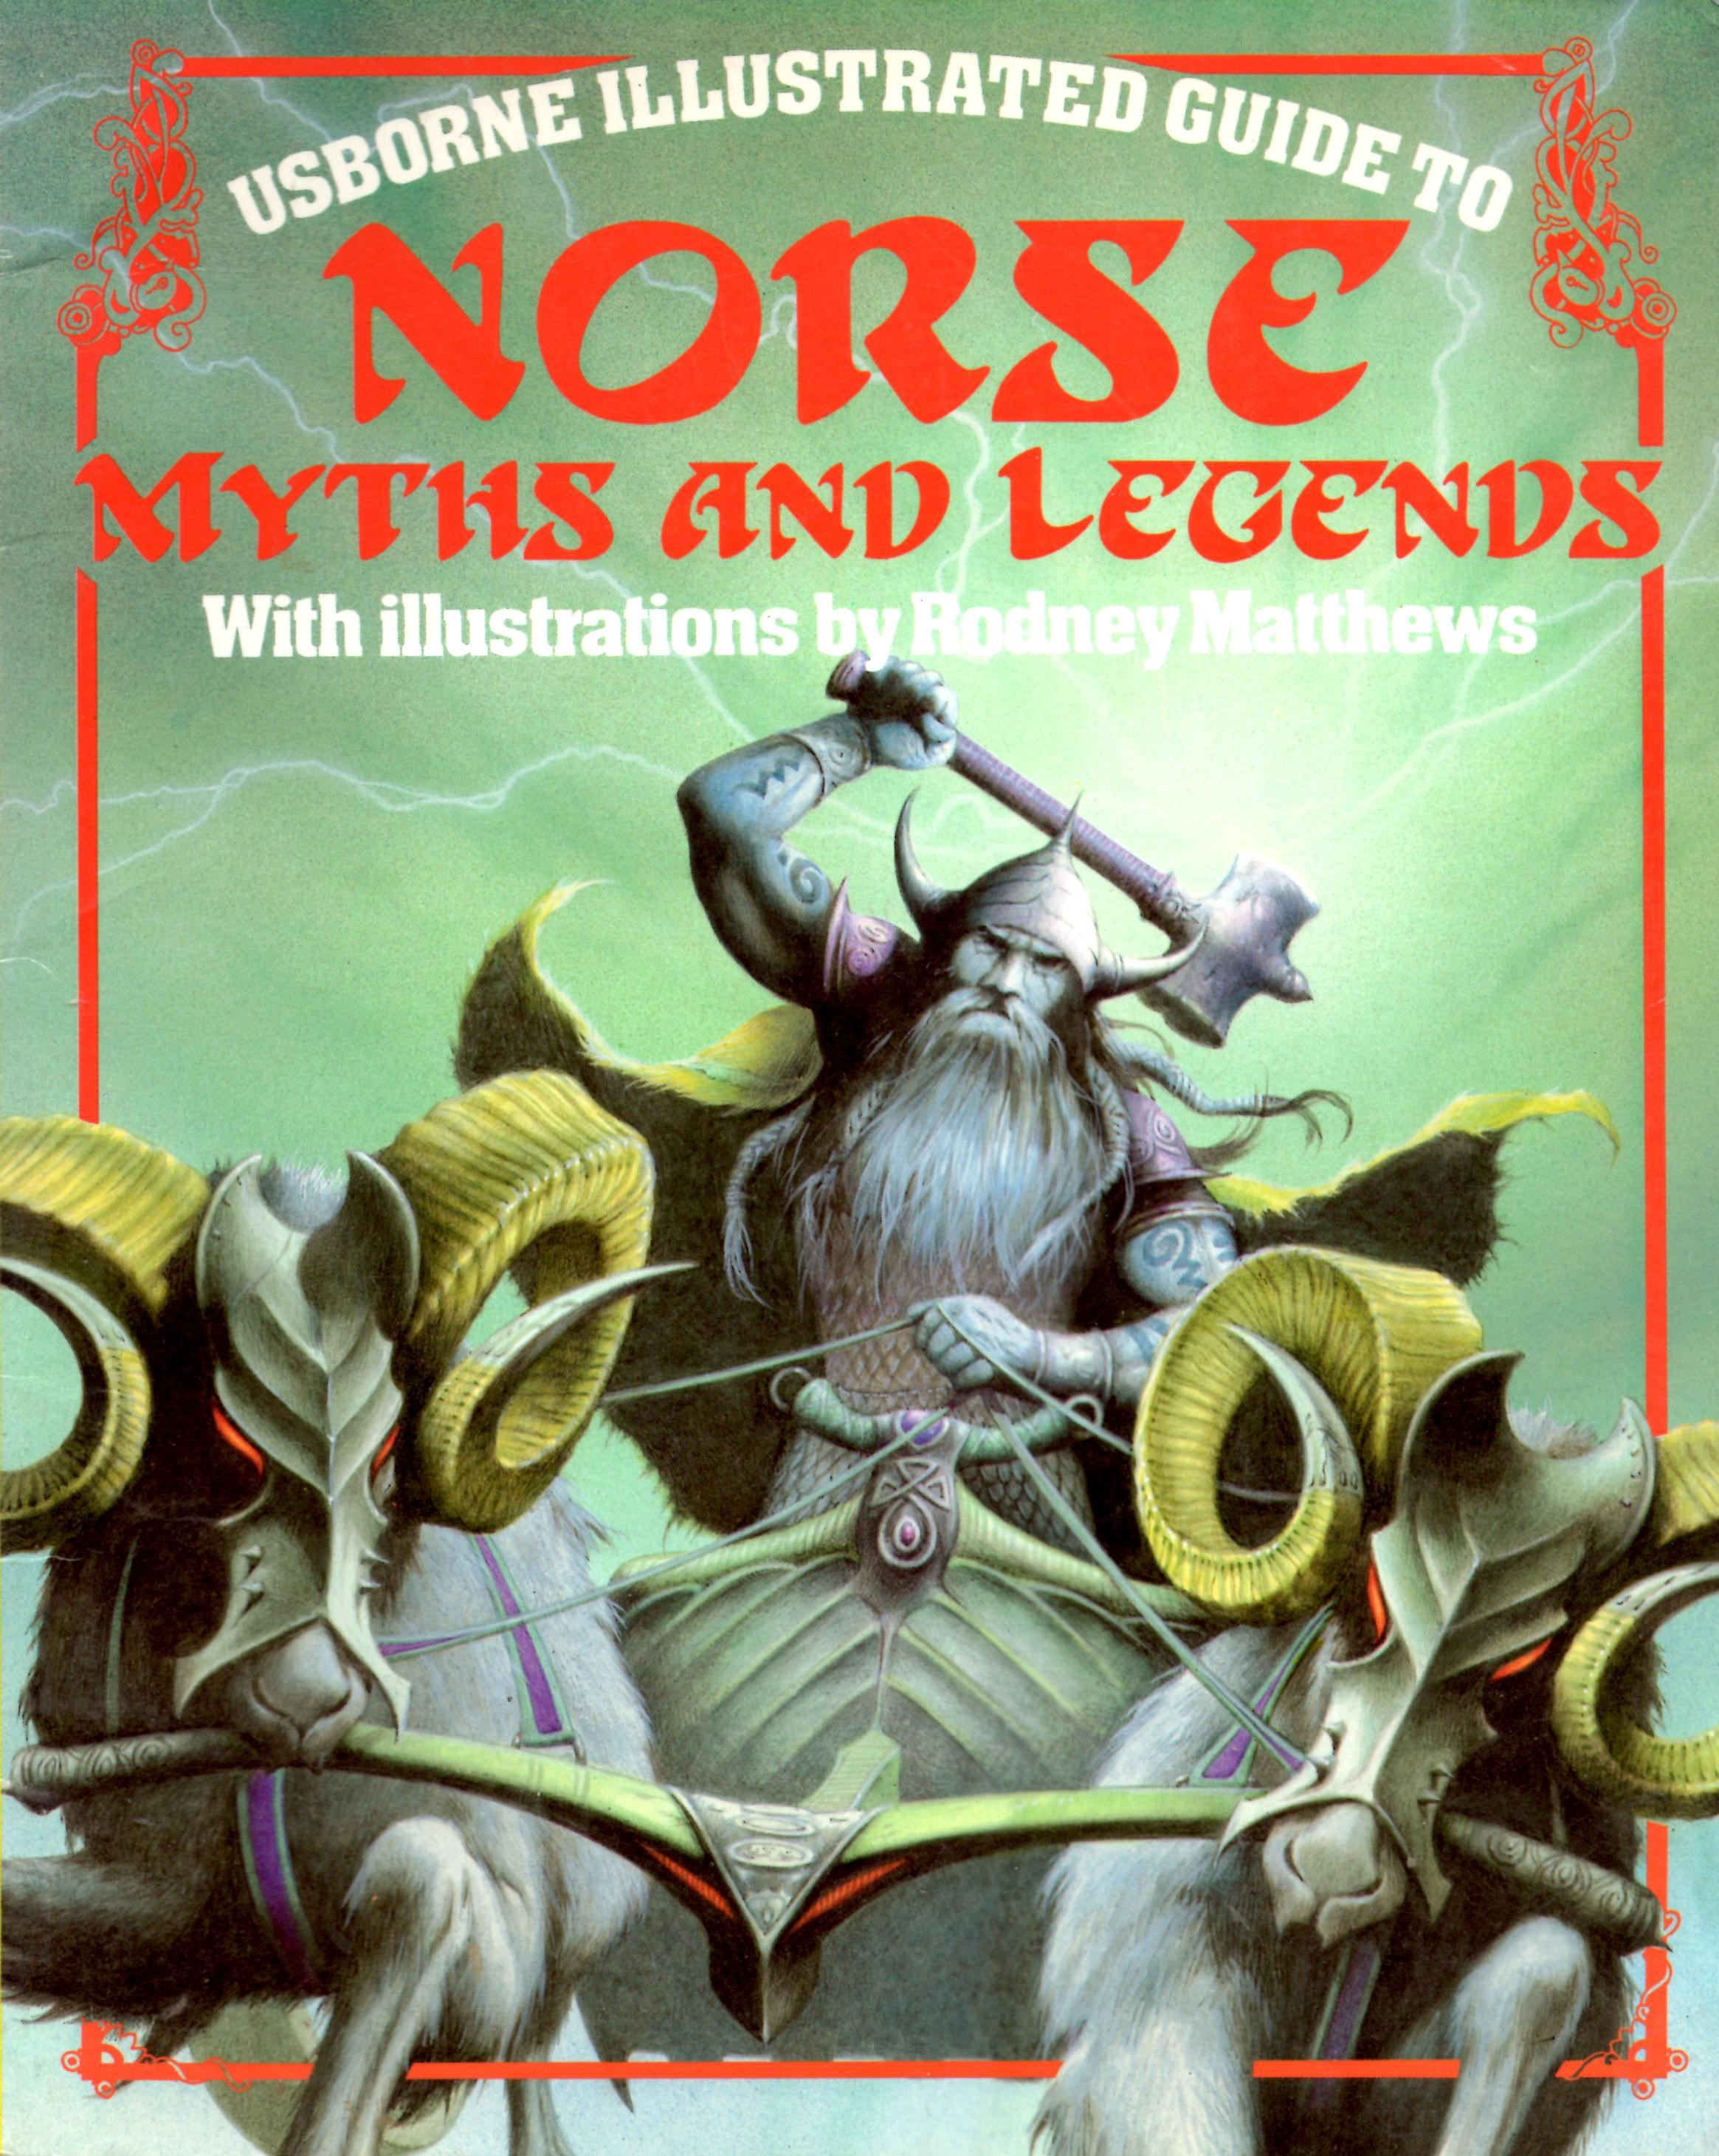 Image for Usborne Illustrated Guide to Norse Myths and Legends